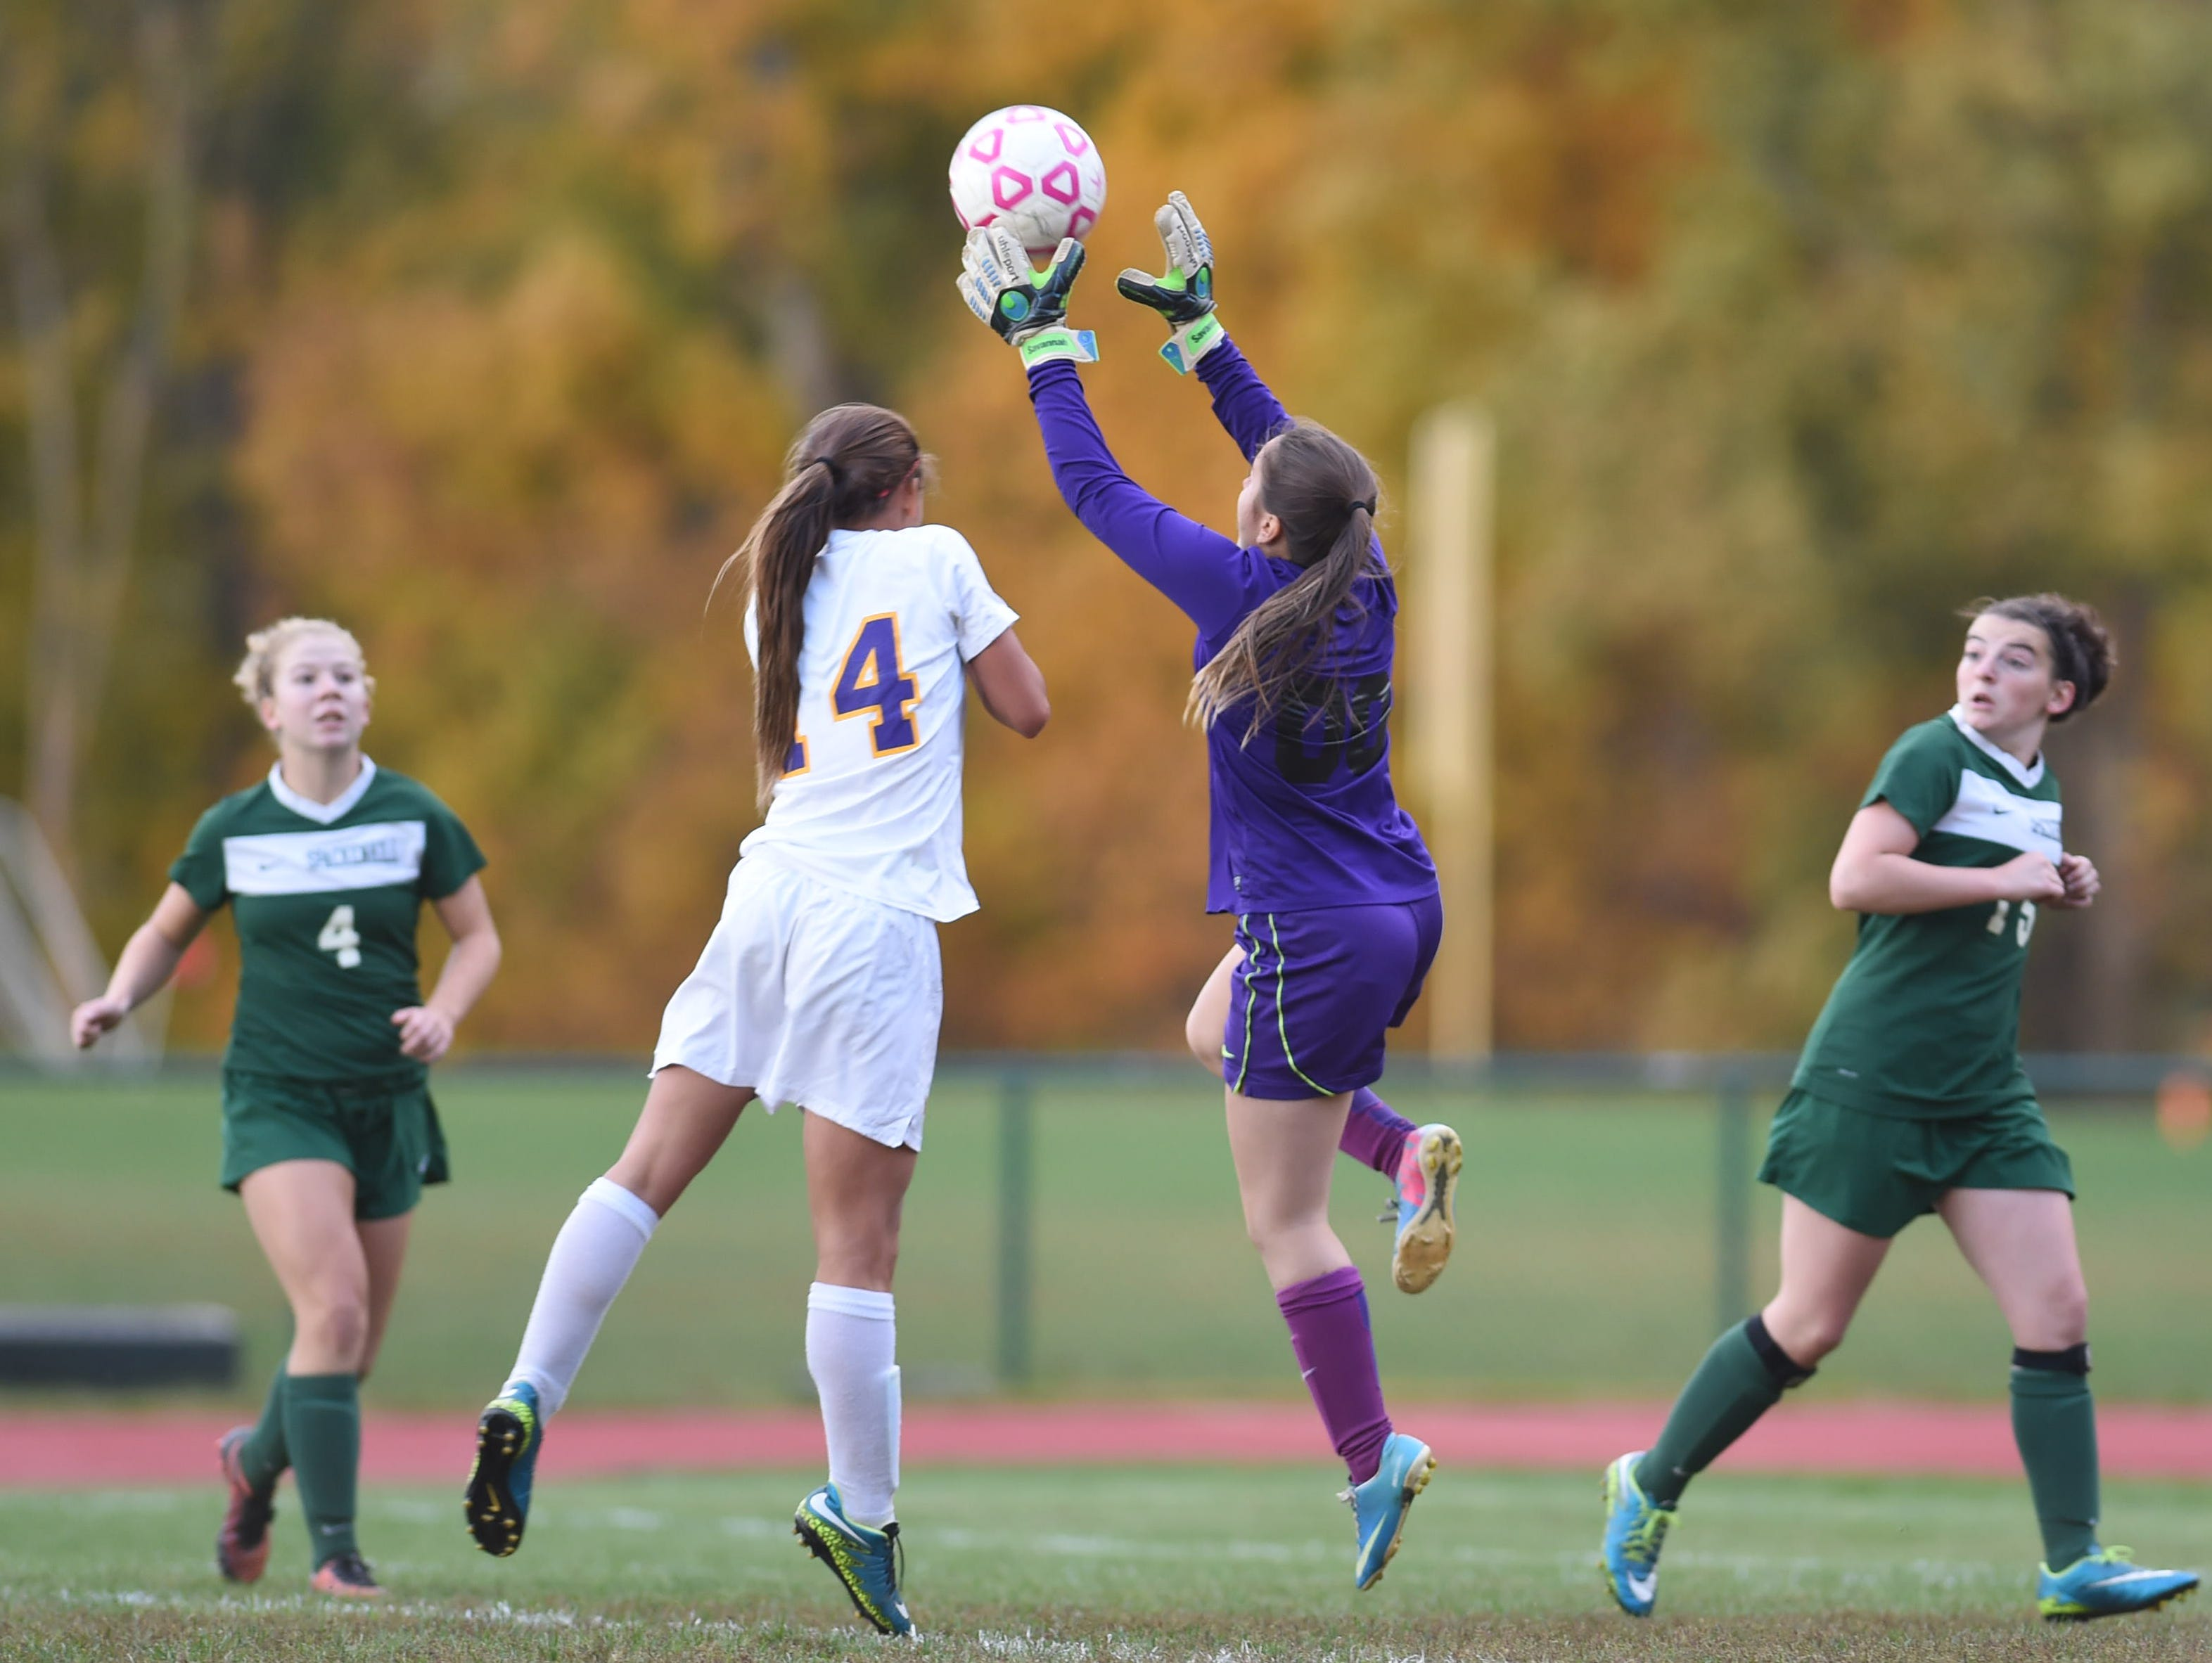 Spackenkill's goalie, Savannah Barefoot grabs the ball away from Rhinebeck's Stephanie Cassens during Wednesday's game in Rhinebeck.